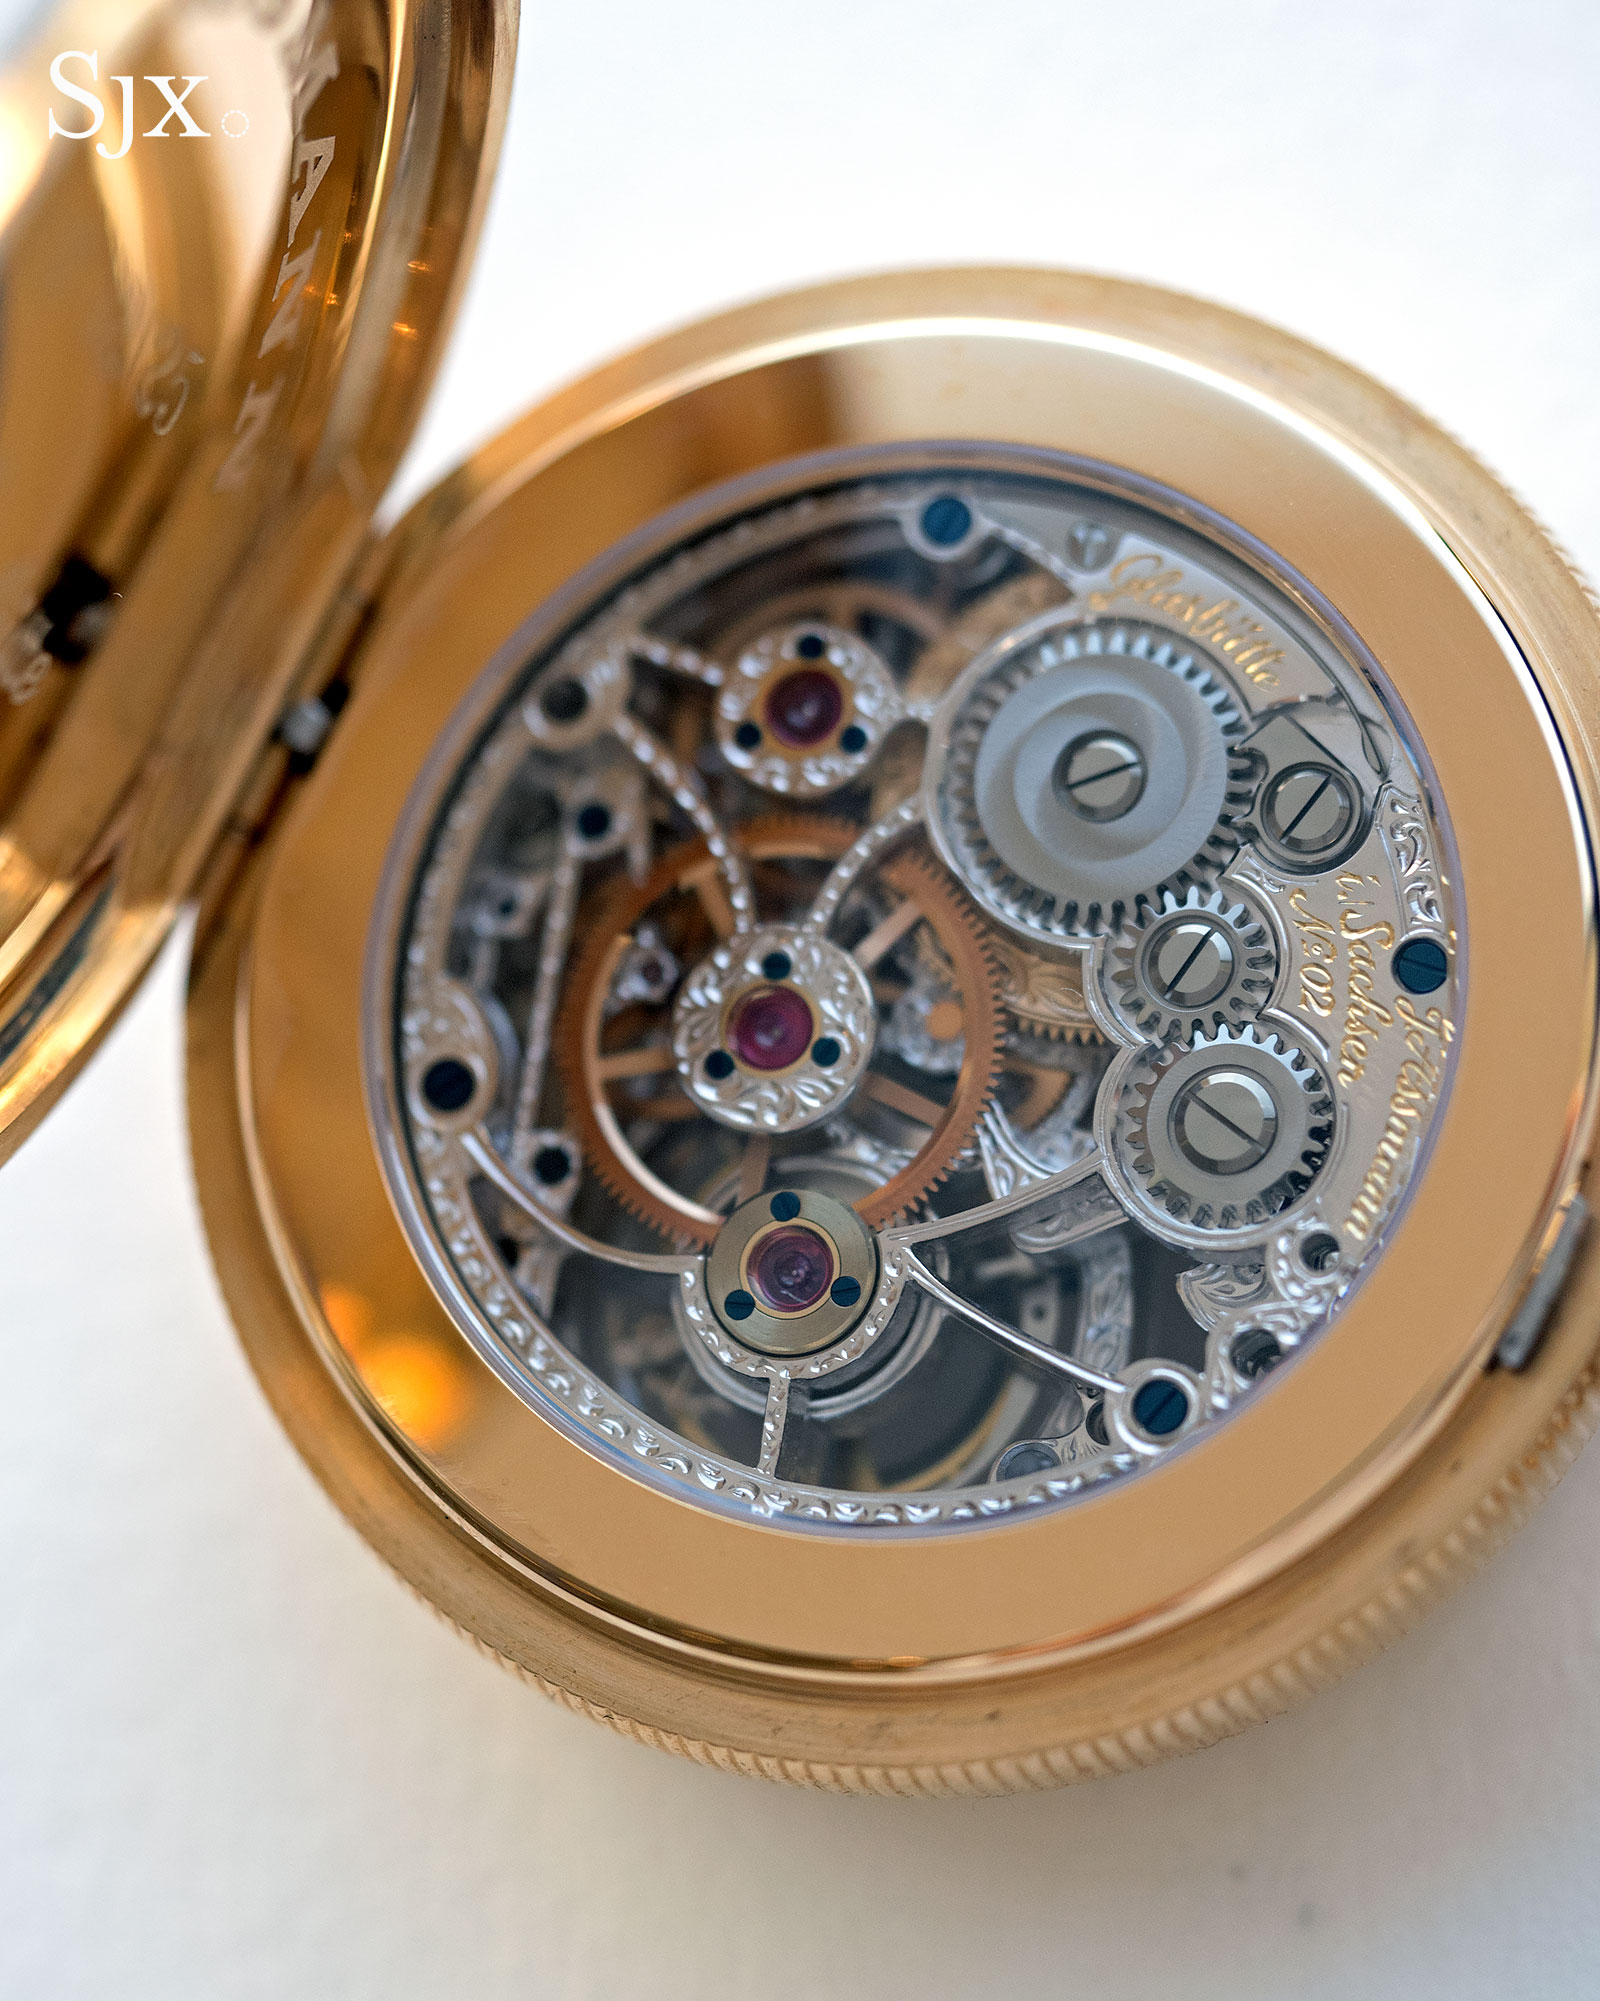 Glashutte Julius Assman 3 tourbillon 5